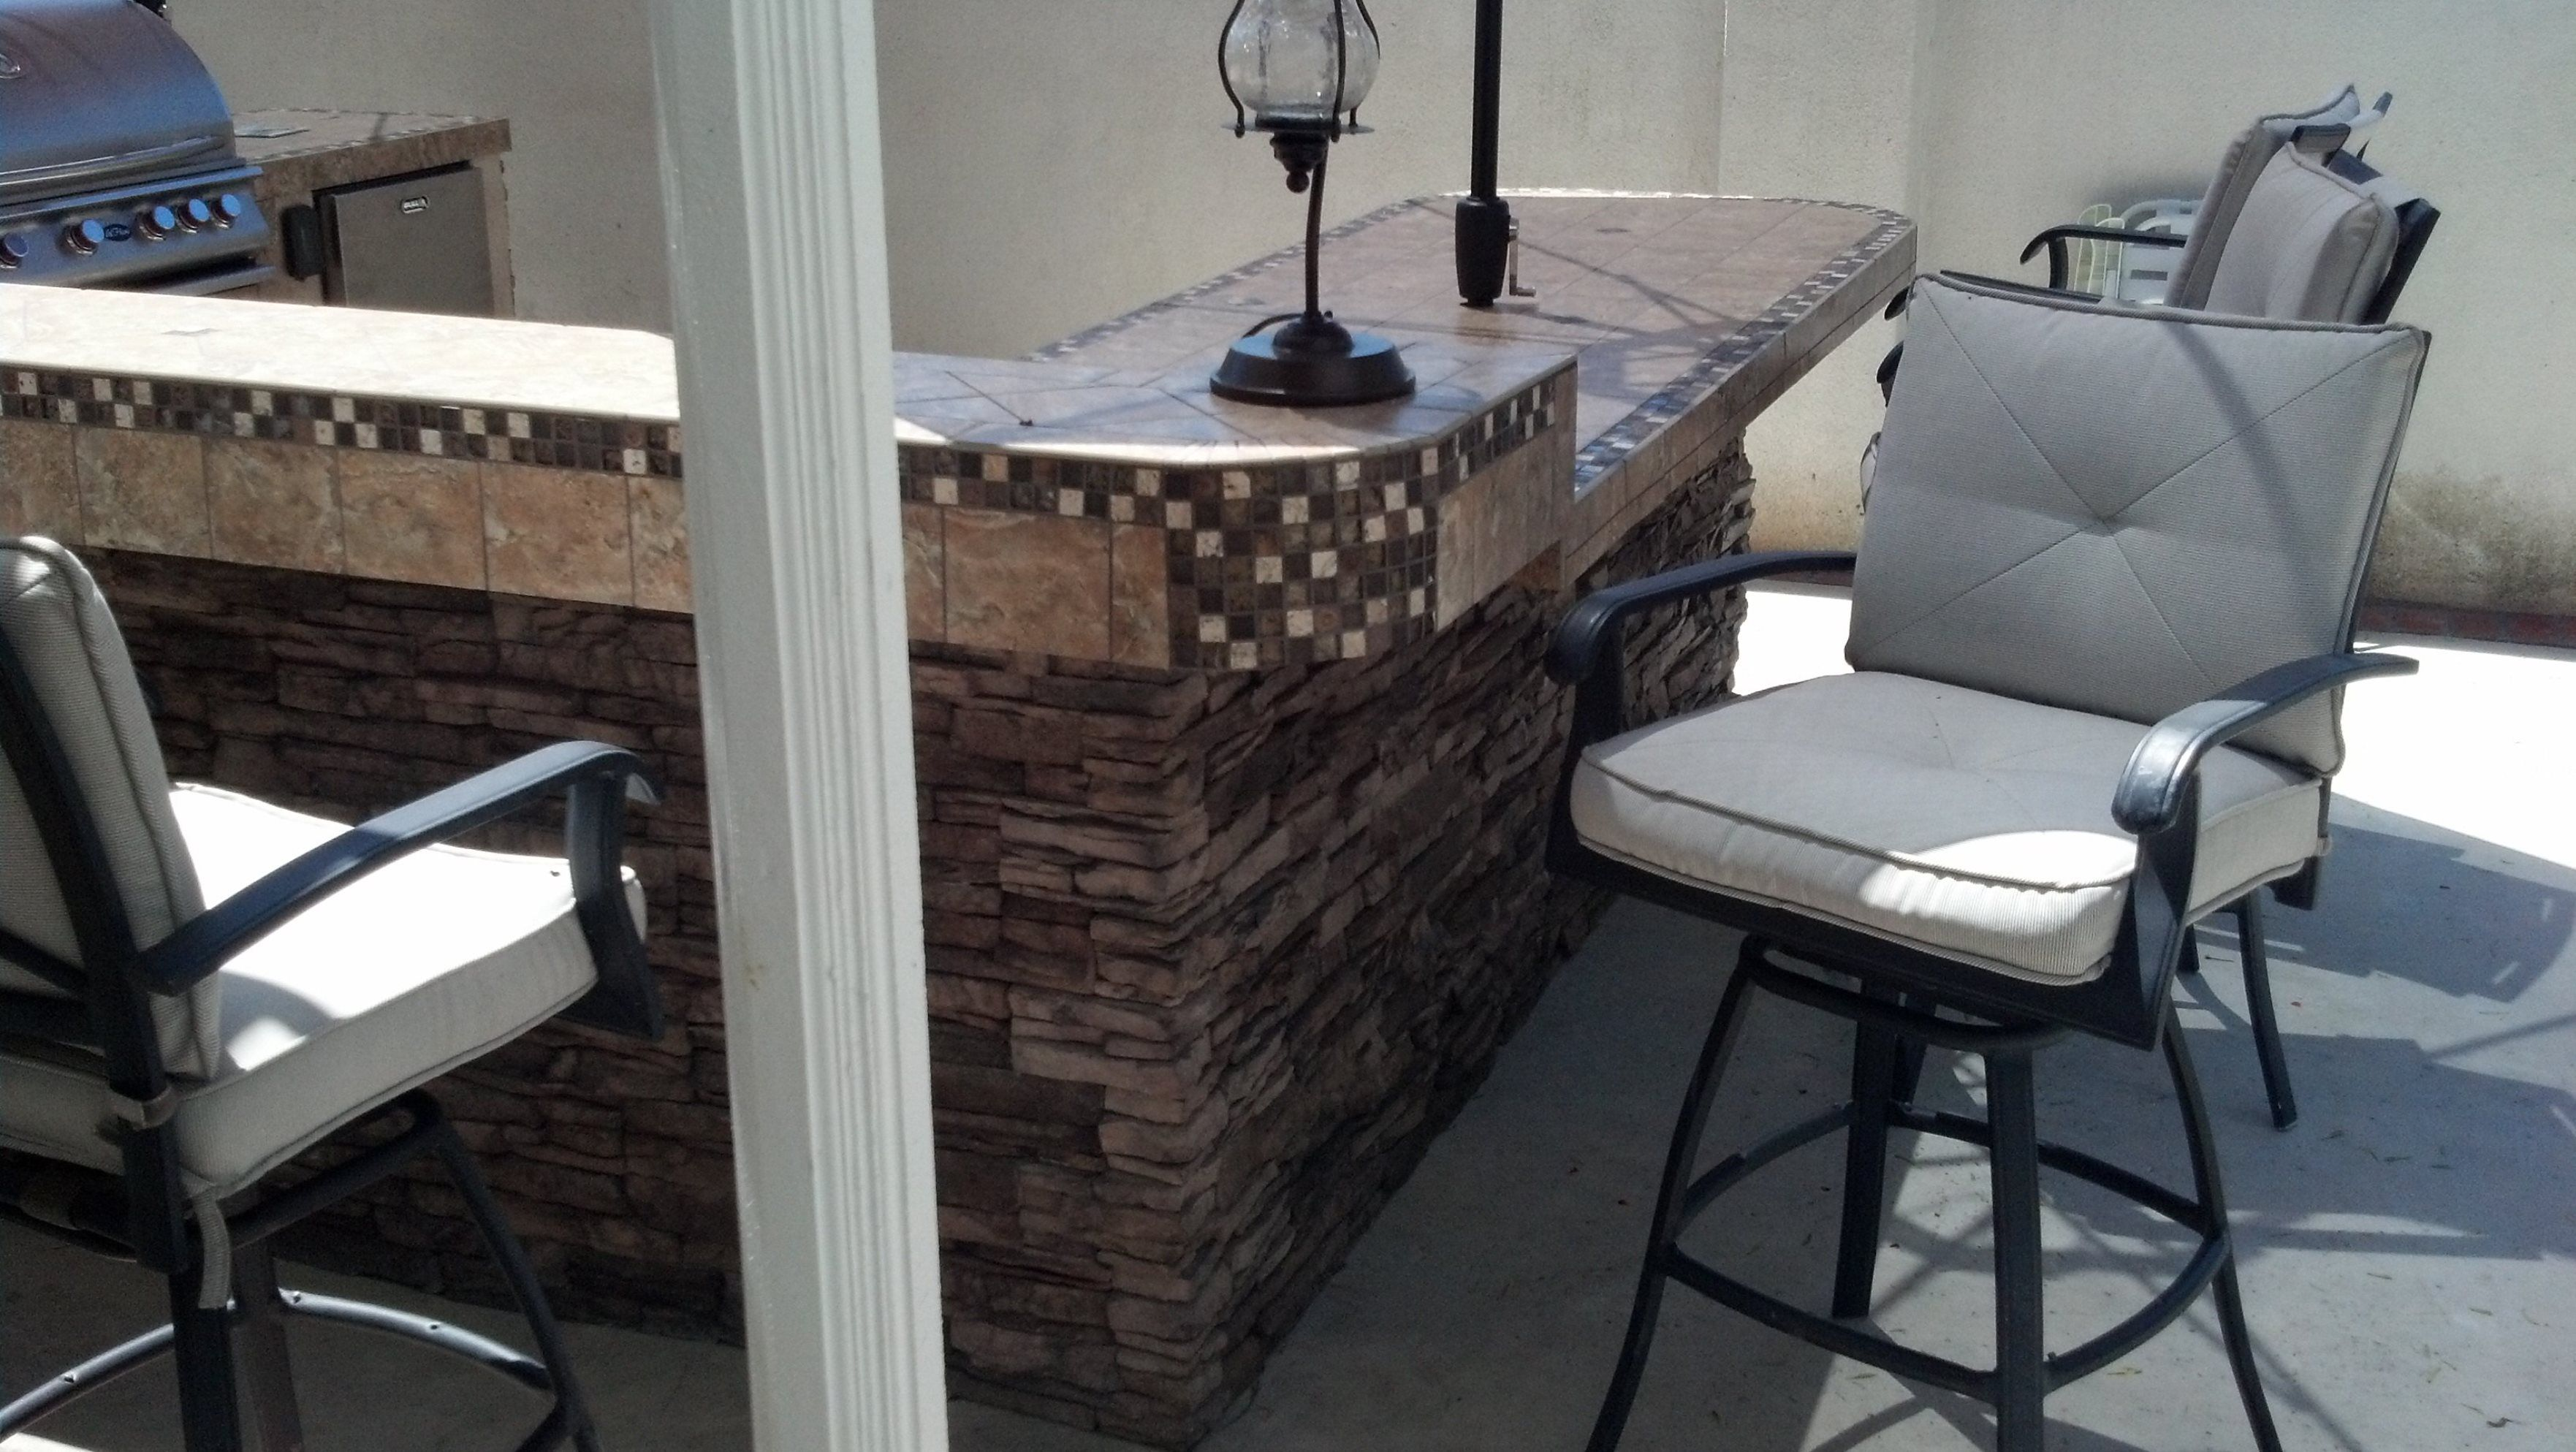 Built-in outdoor kitchen with pizza oven, dual side burner five burner BBQ with confection oven and a searer; two refrigerators; a stand up conversation ledge and sit down eating area, Eldorado stacked stone on the outside on the kitchen